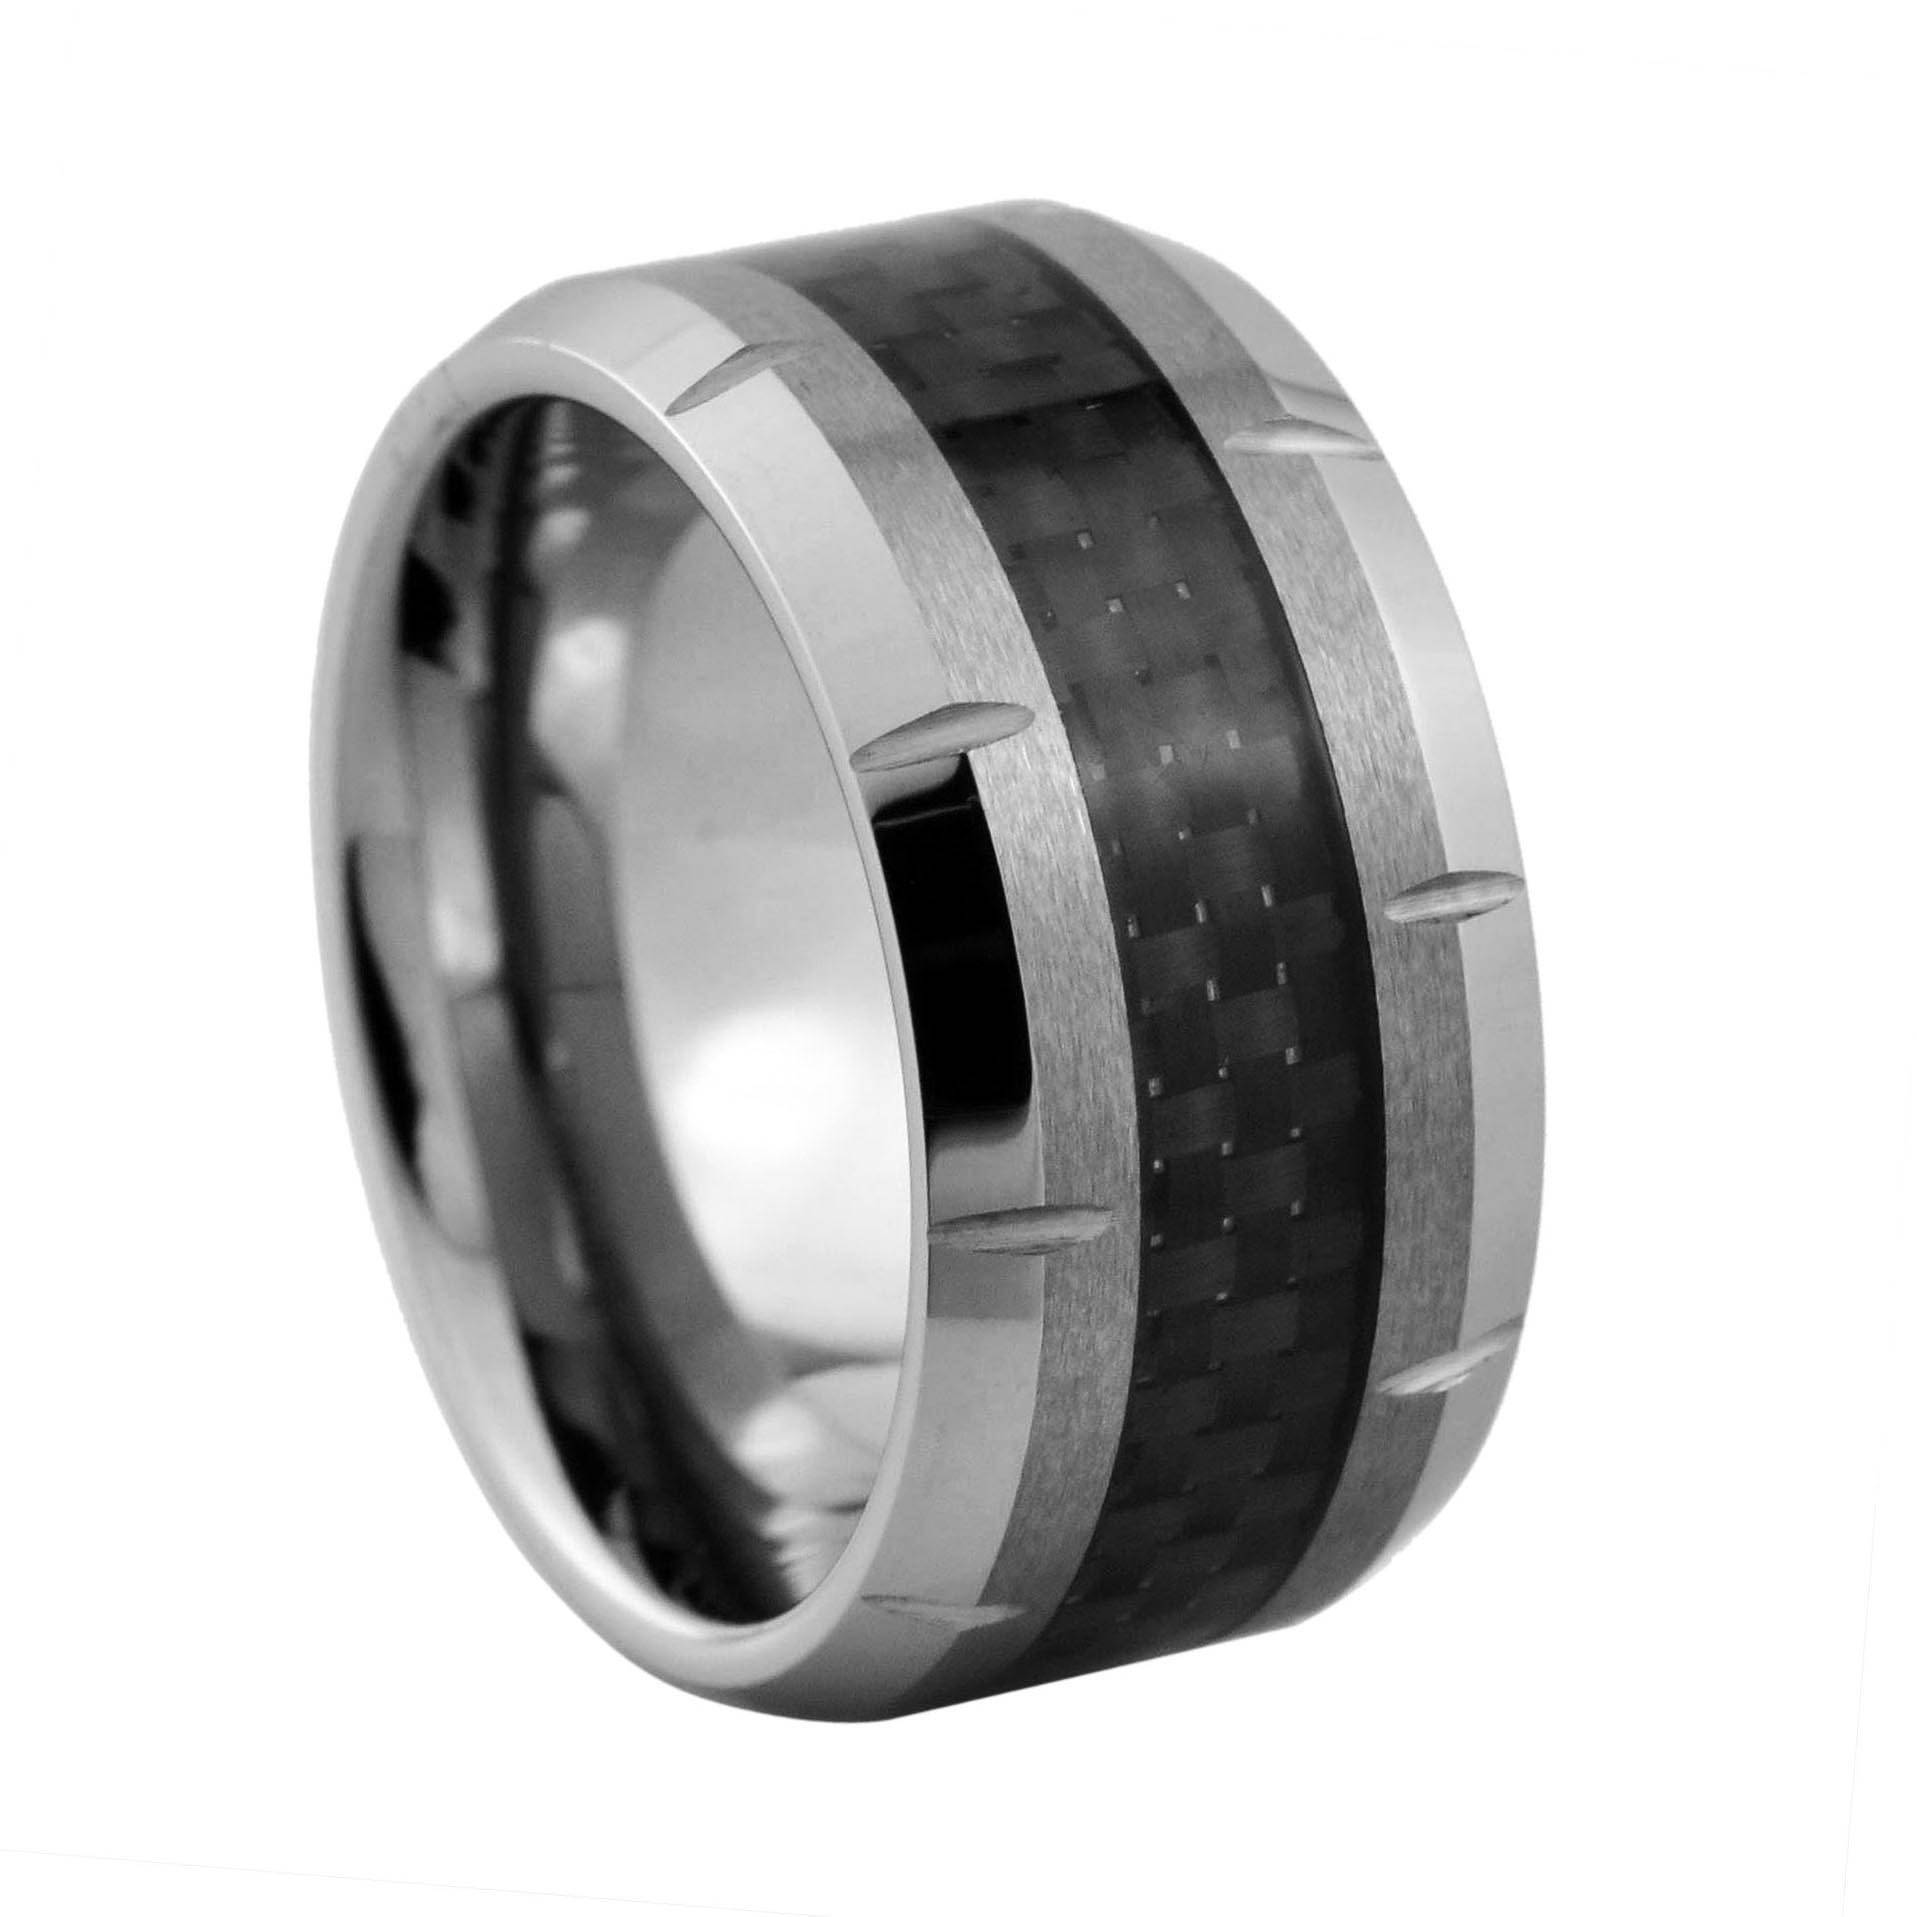 Top Quality Men's Beveled Tungsten Carbide Rings Inlaid Black Carbon Fiber, Comfort Fit 8mm